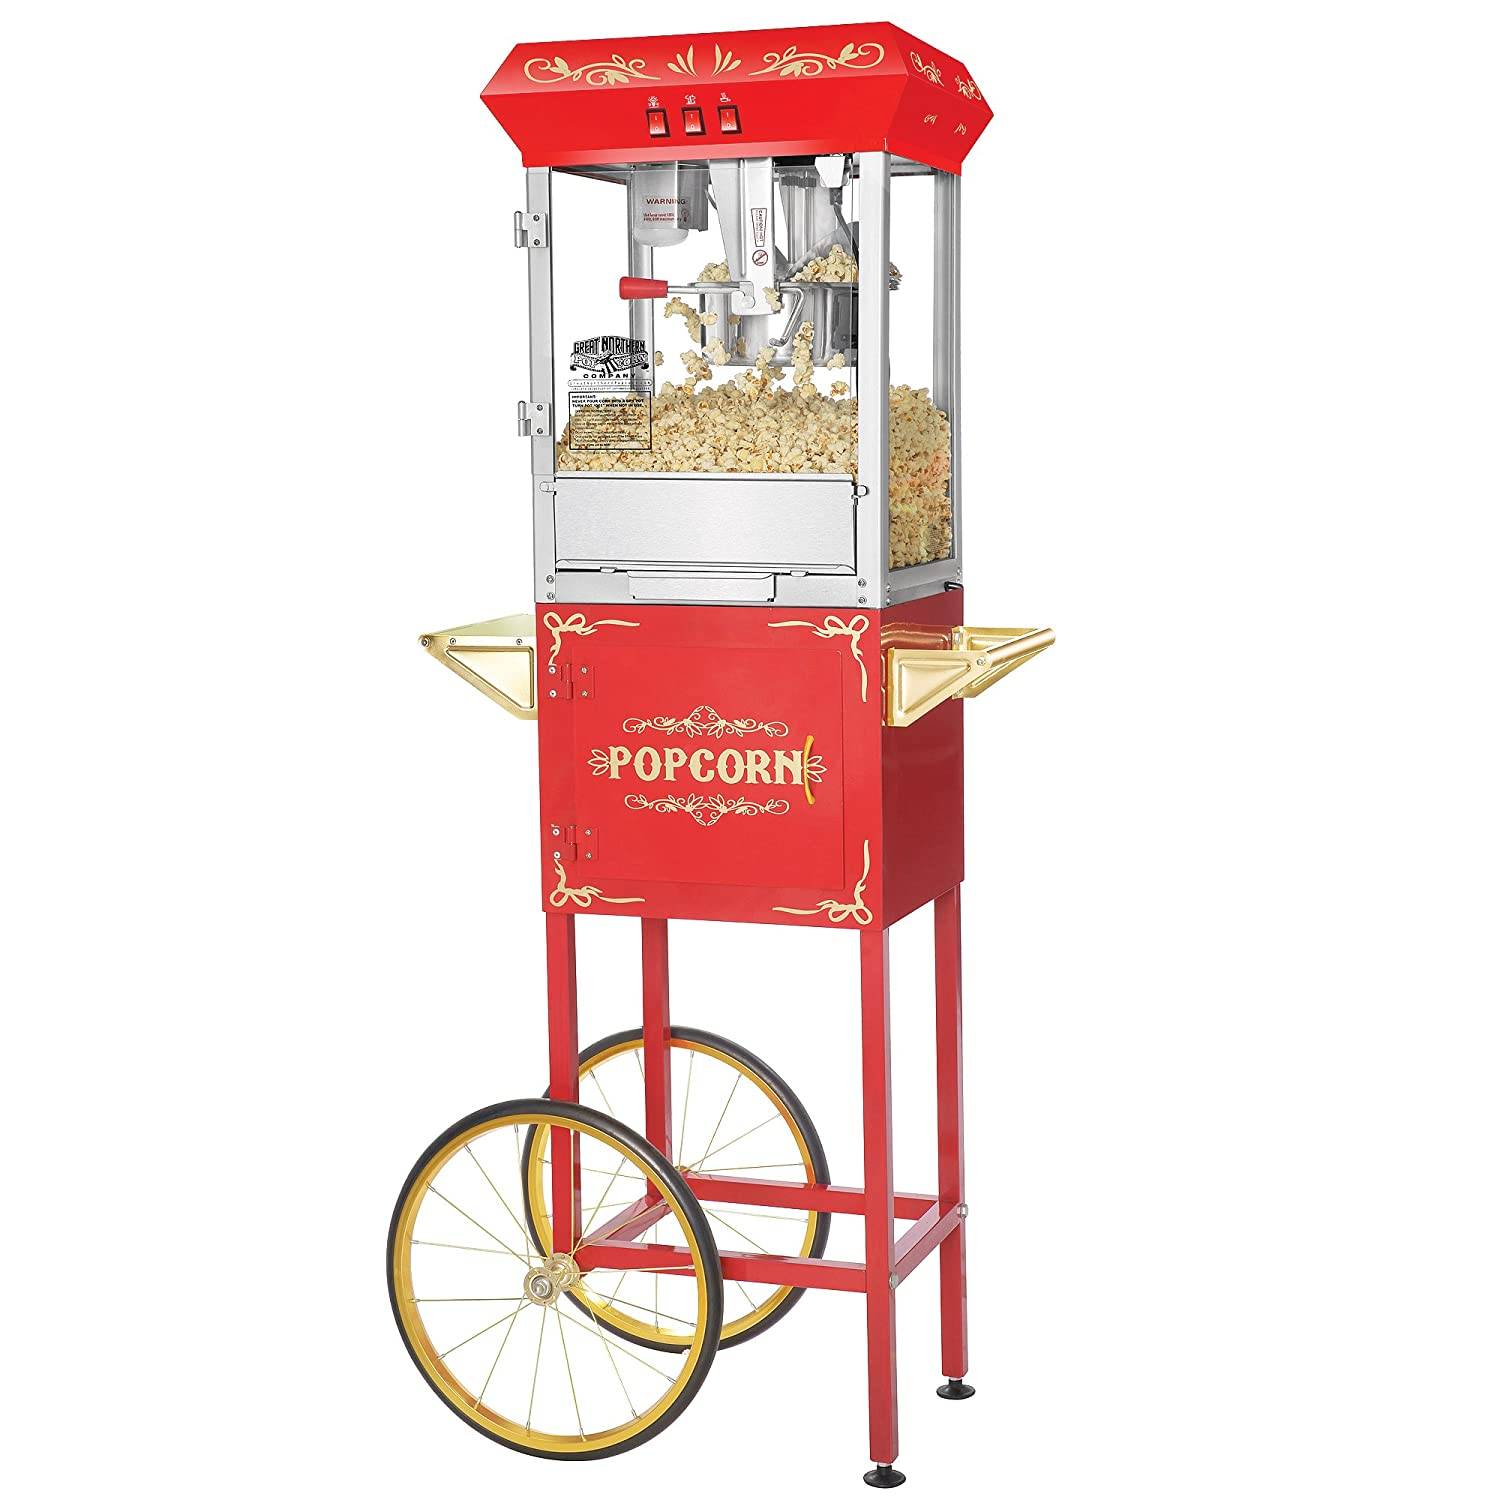 81MBrylxQcL._SL1500_ amazon com great northern popcorn 6097 8 oz foundation red full gold medal popcorn machine wiring diagram at gsmportal.co